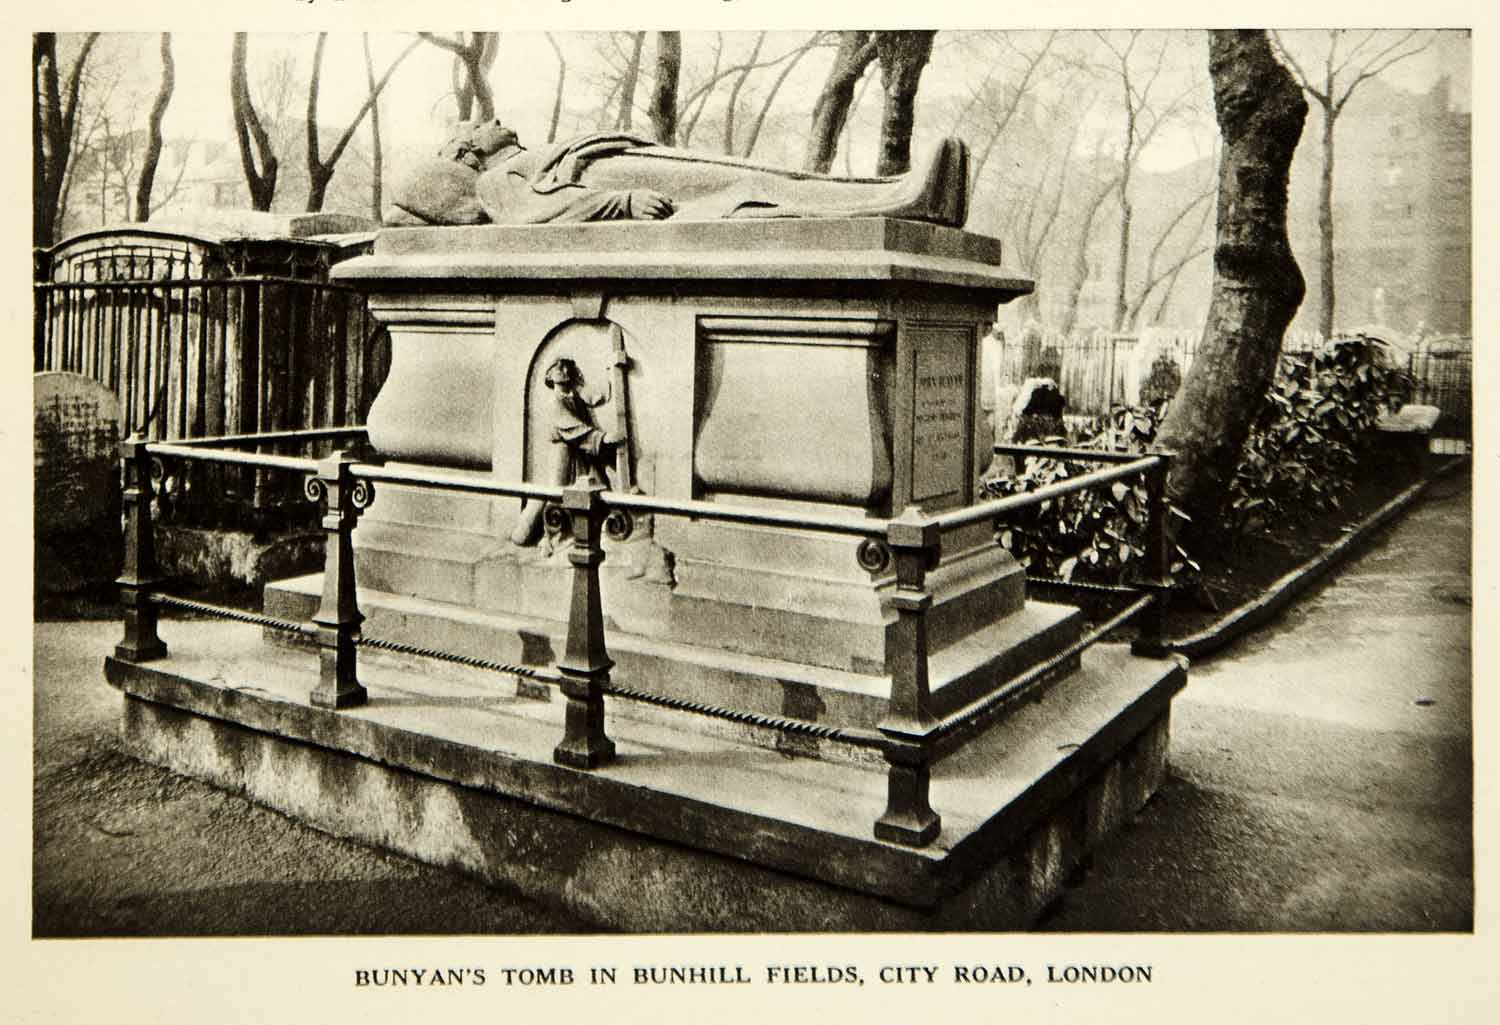 1928 Rotogravure John Bunyan Tomb Bunhill Fields City Road London Memorial YJB1